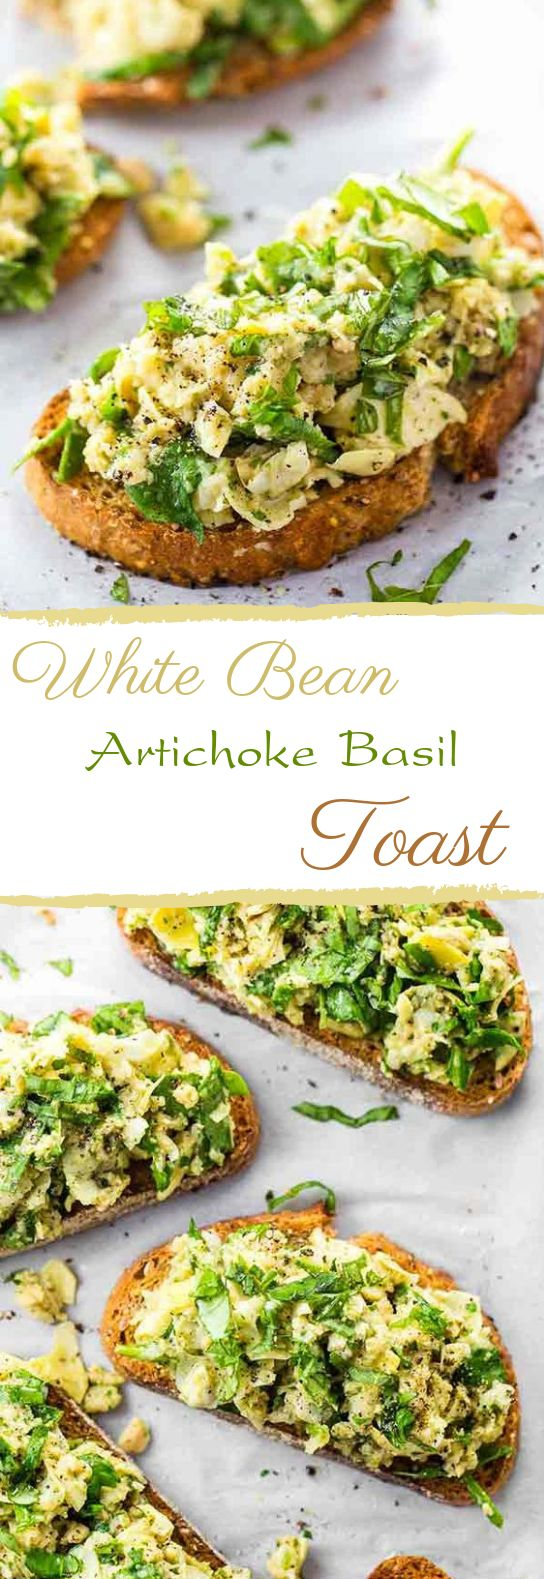 White Bean Artichoke Basil Toasts #breakfast #vegetarian